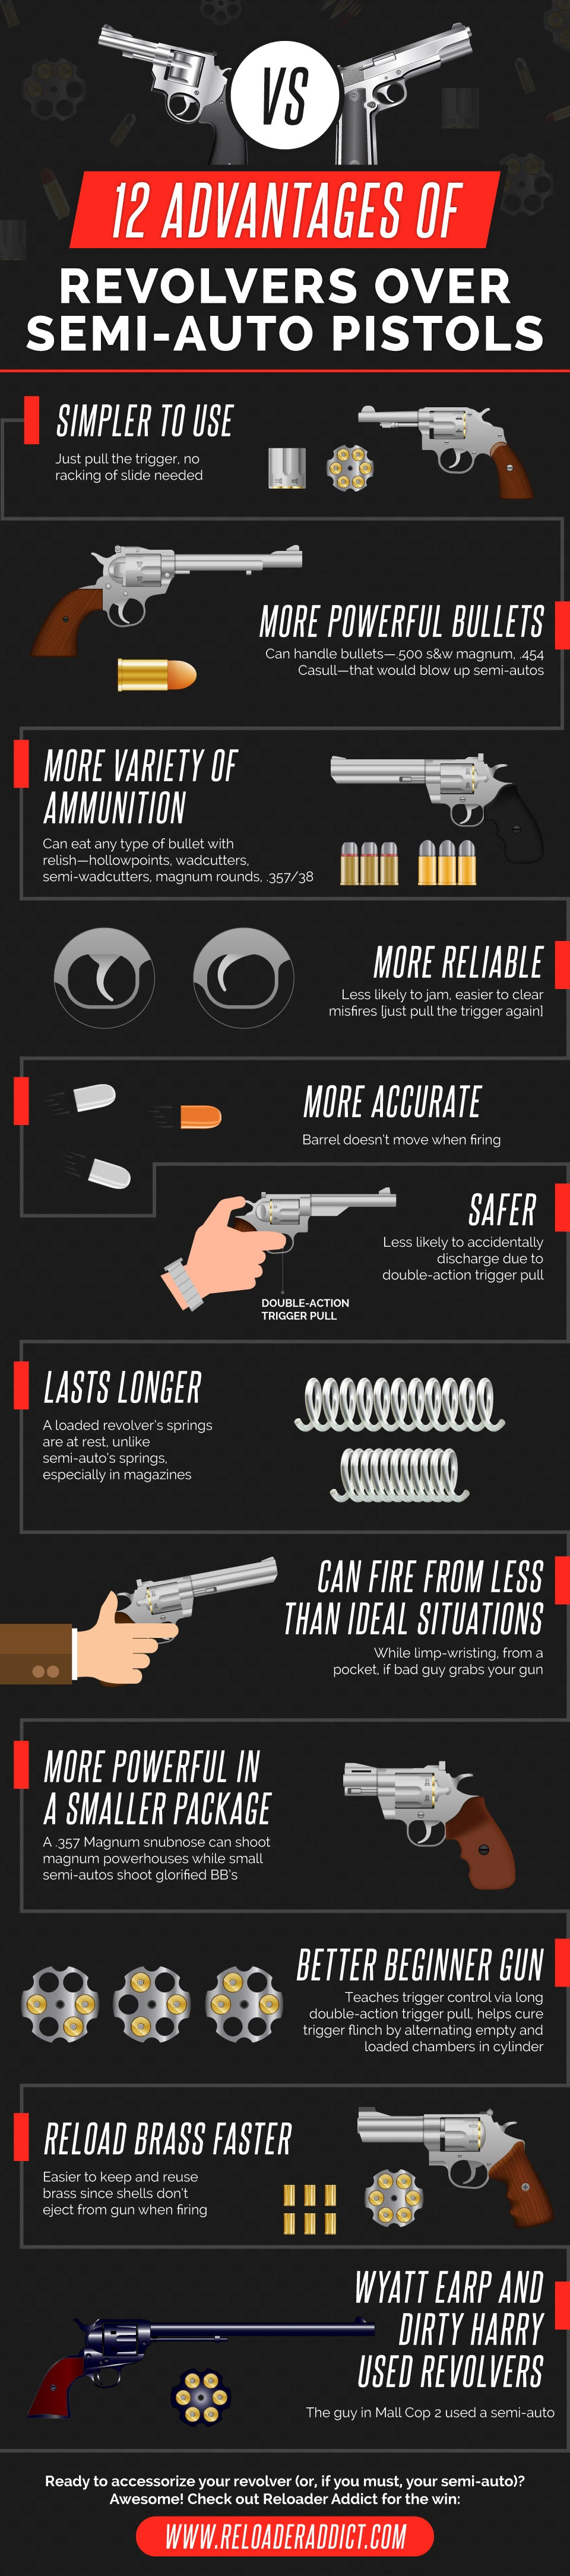 12 Advantages of Revolvers Over Semi-Auto Pistols #infographic